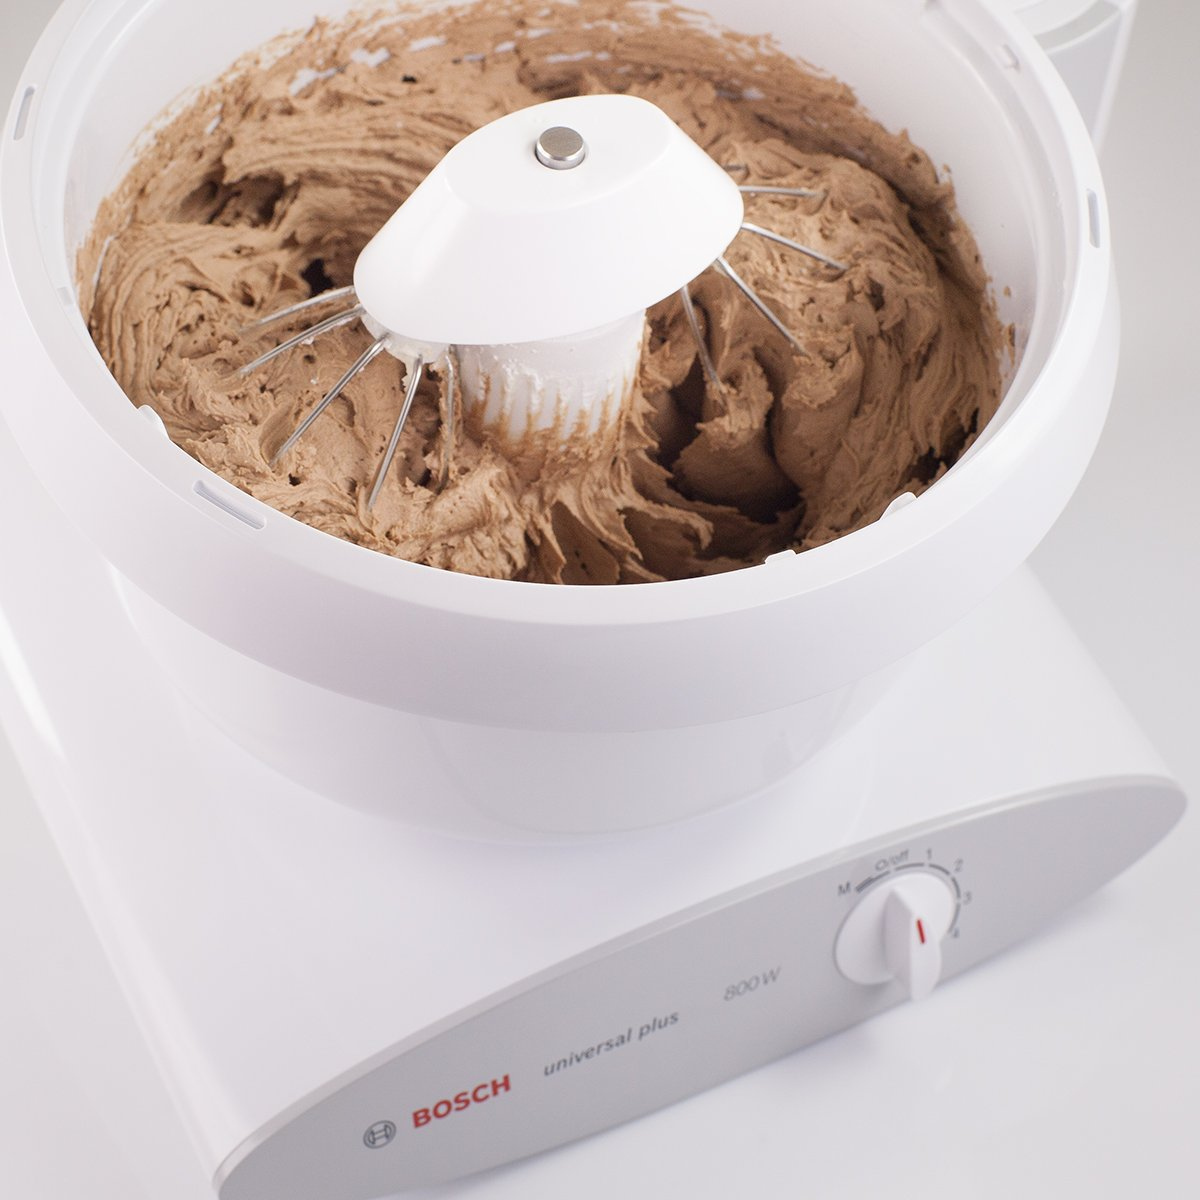 Bosch MUM6N10UC Universal Plus Stand Mixer, 800 watt, 6.5-Quarts with Cookie Dough Paddles